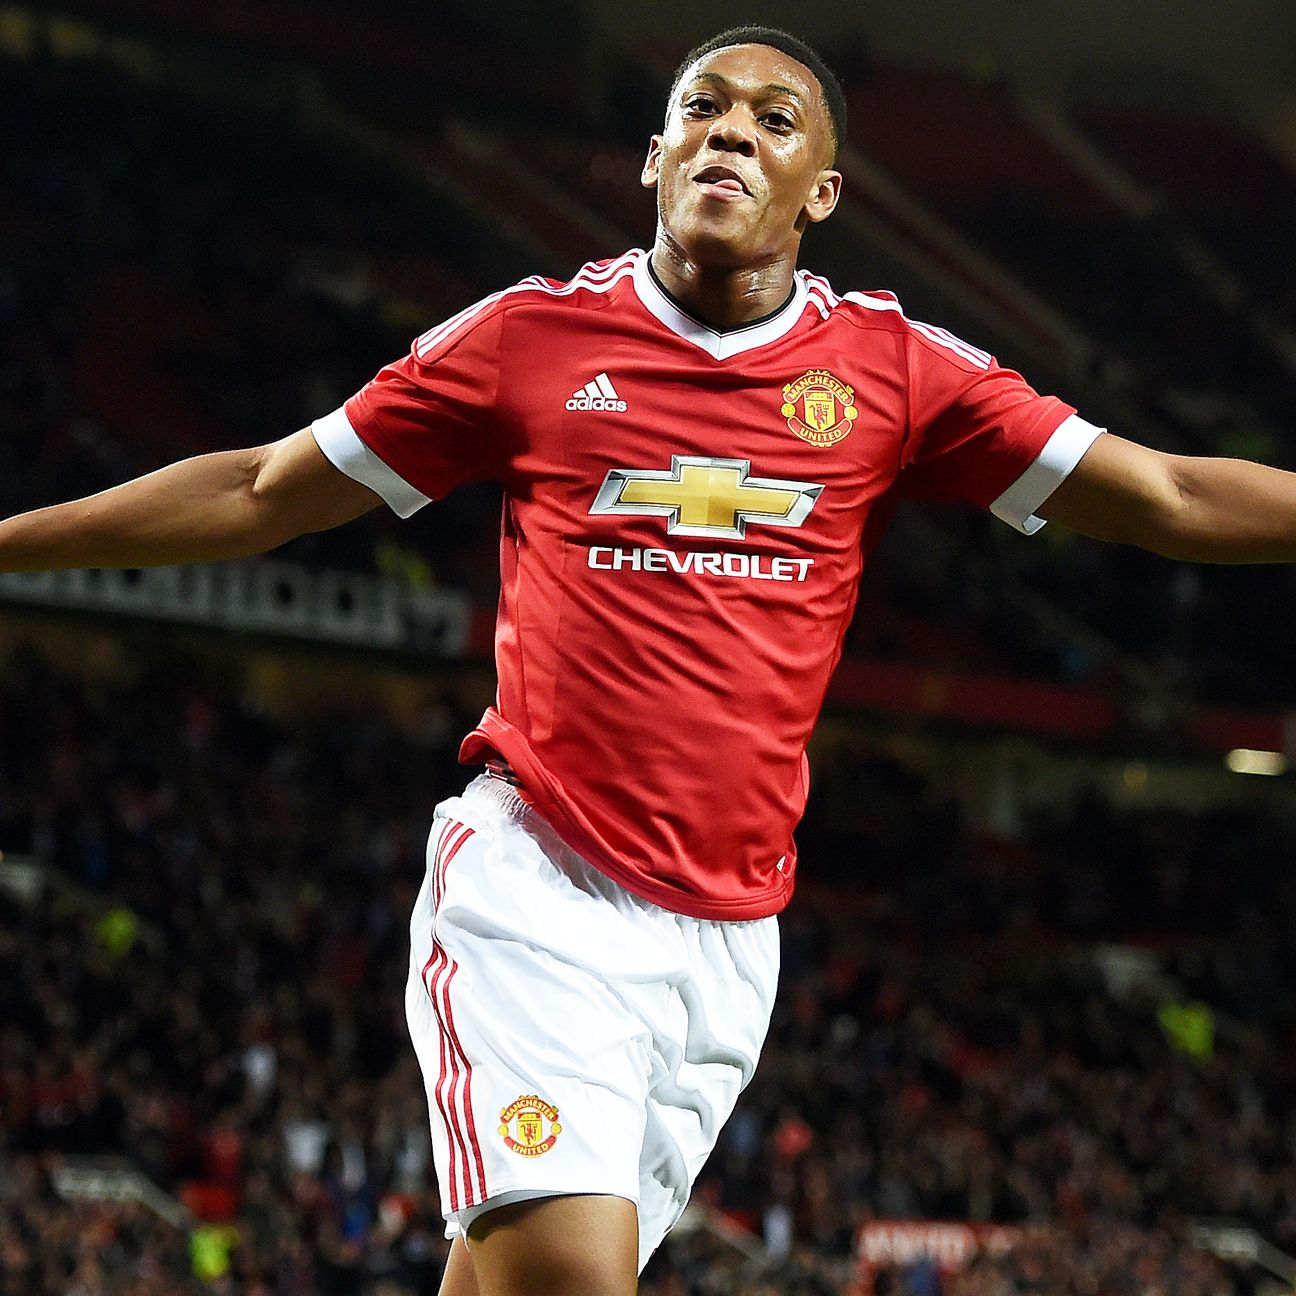 Anthony Martial has tallied five goals in all competitions so far this season for Manchester United.